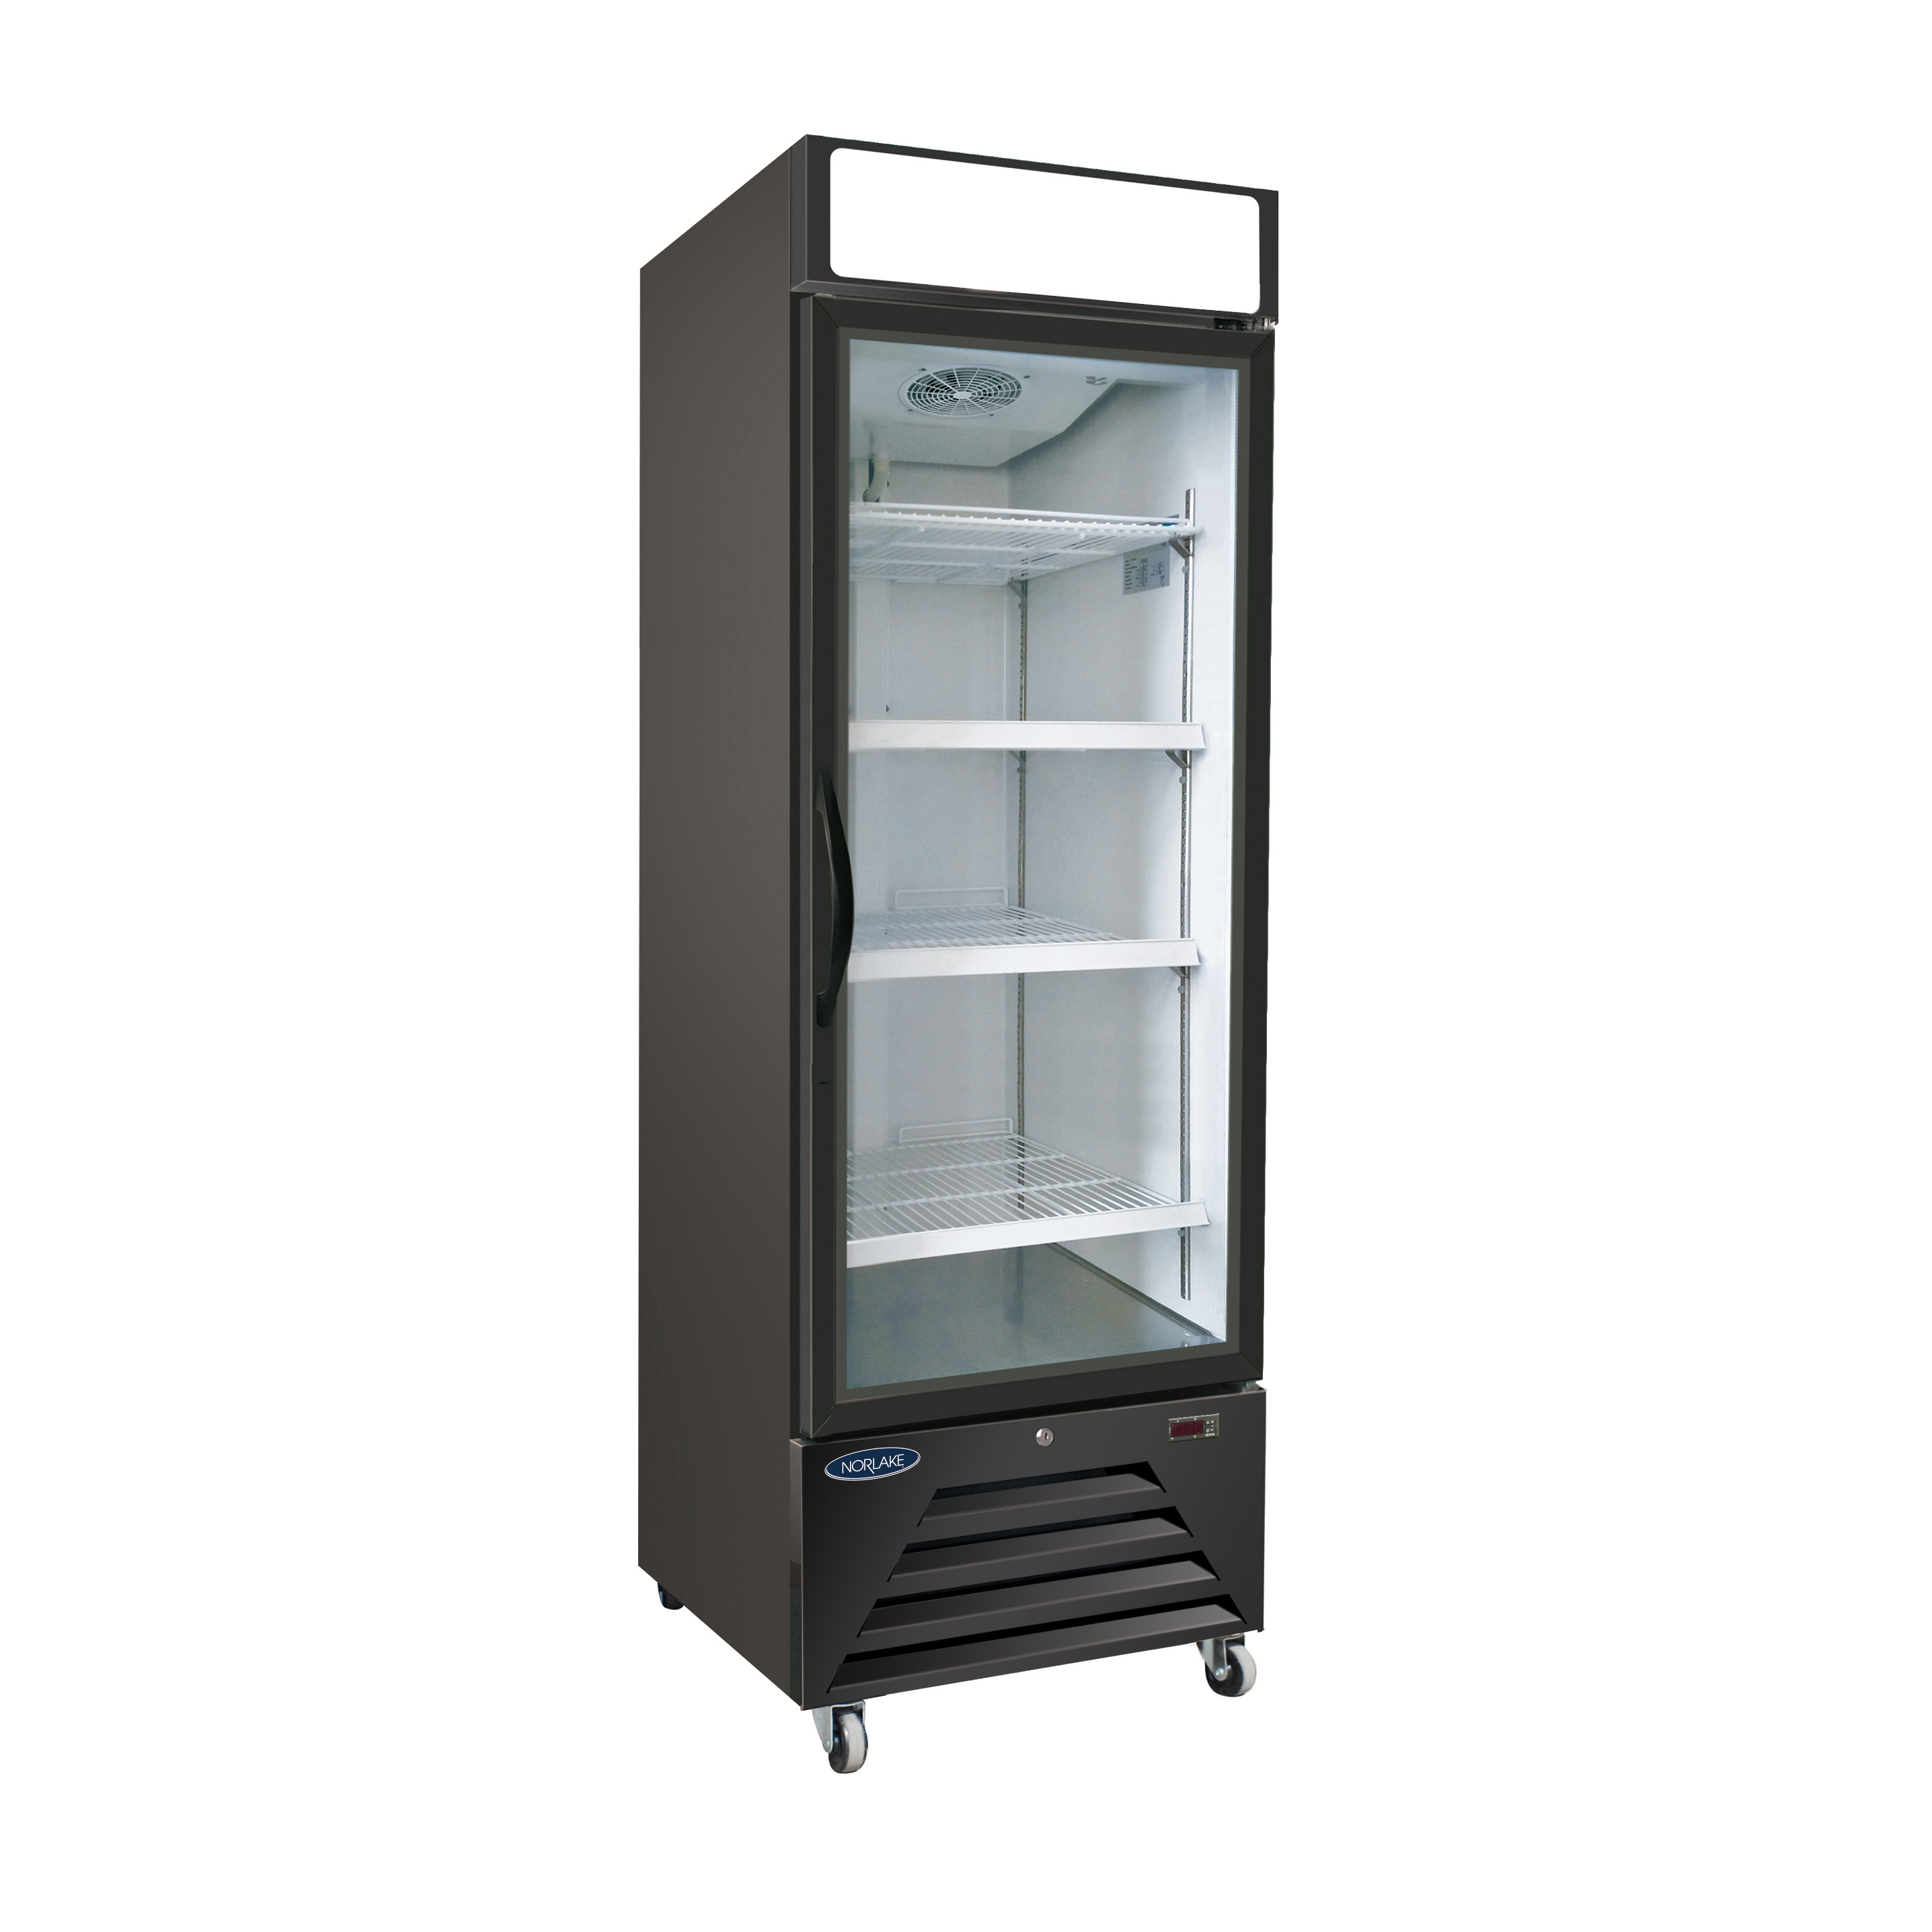 Nor-Lake NLFGM23HB freezer, merchandiser